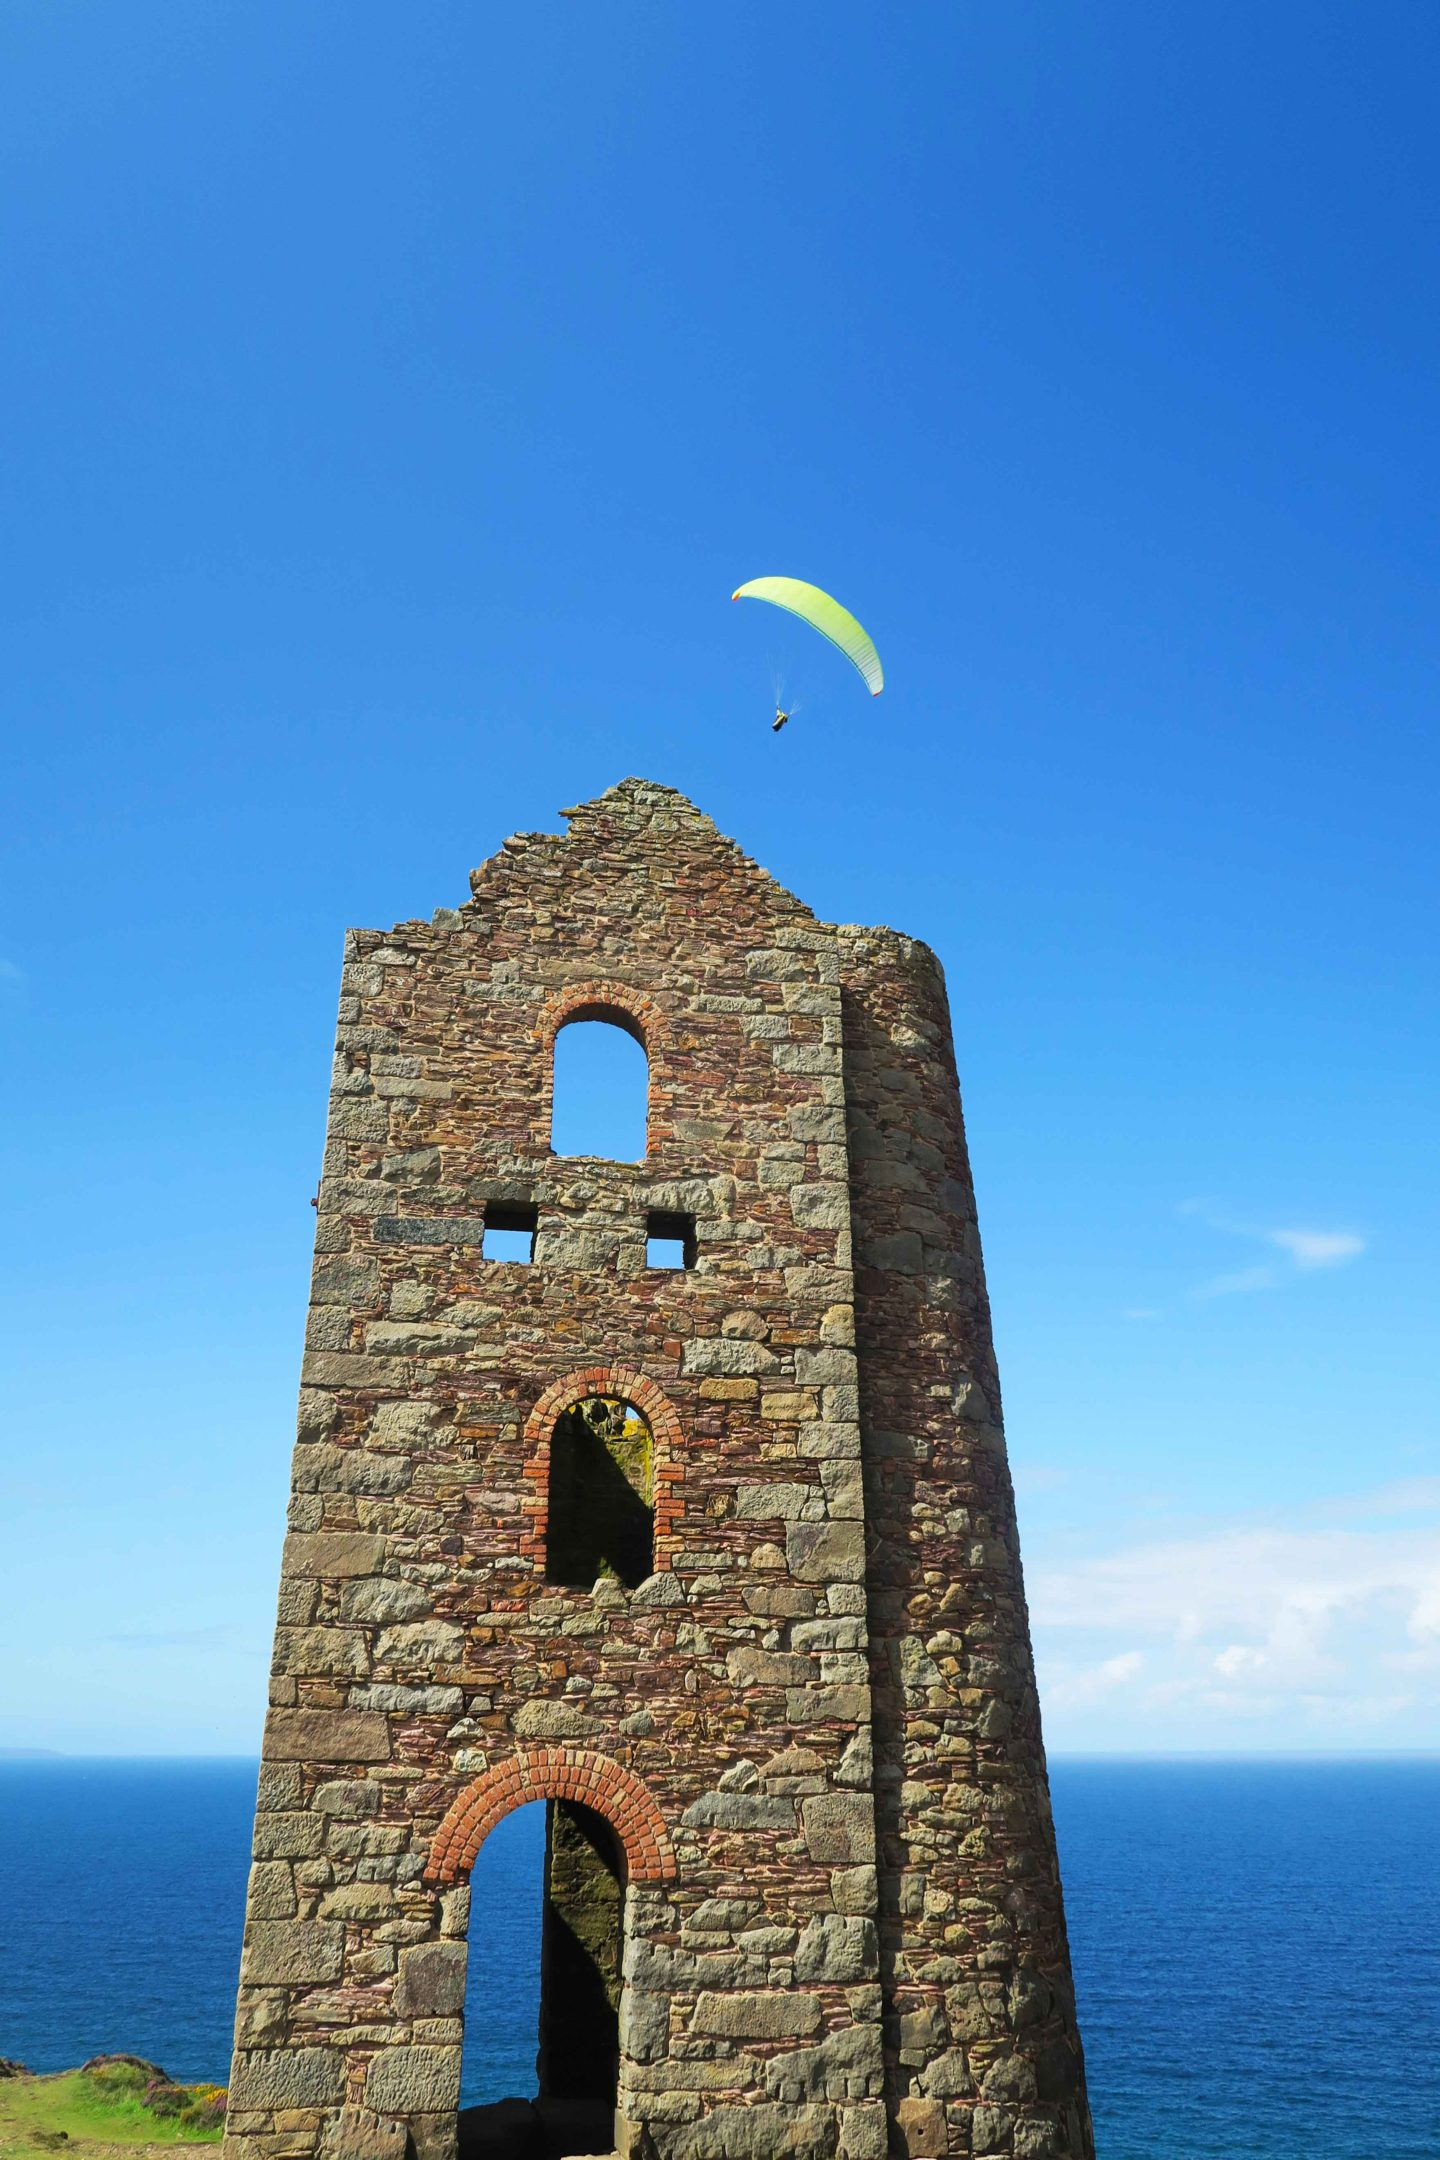 paraglider over national trust tin mine called wheal coates in cornwall